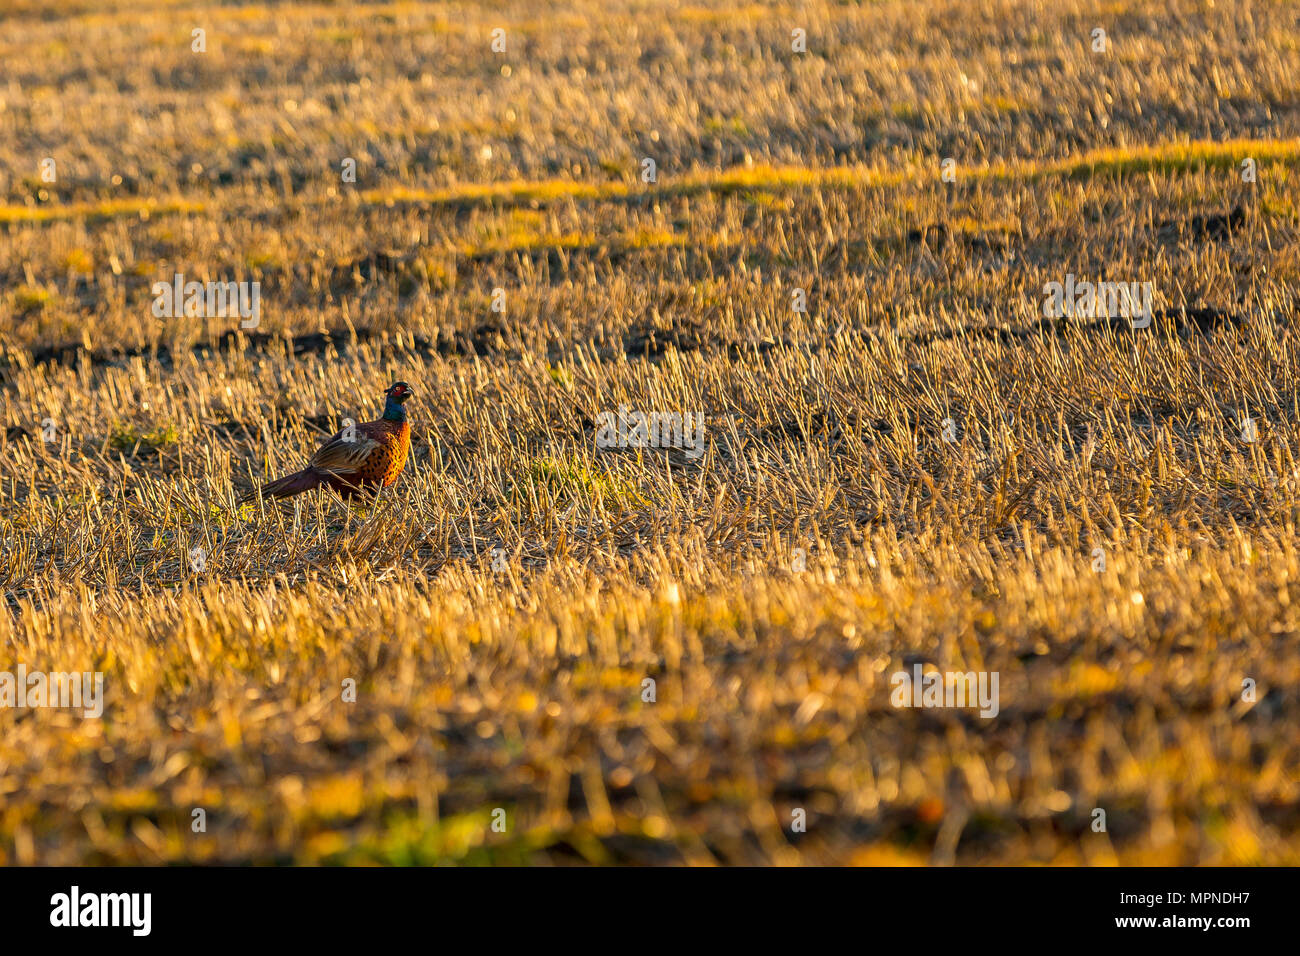 A male pheasant in a cropped cornfield in Wentworth, South Yorkshire. - Stock Image